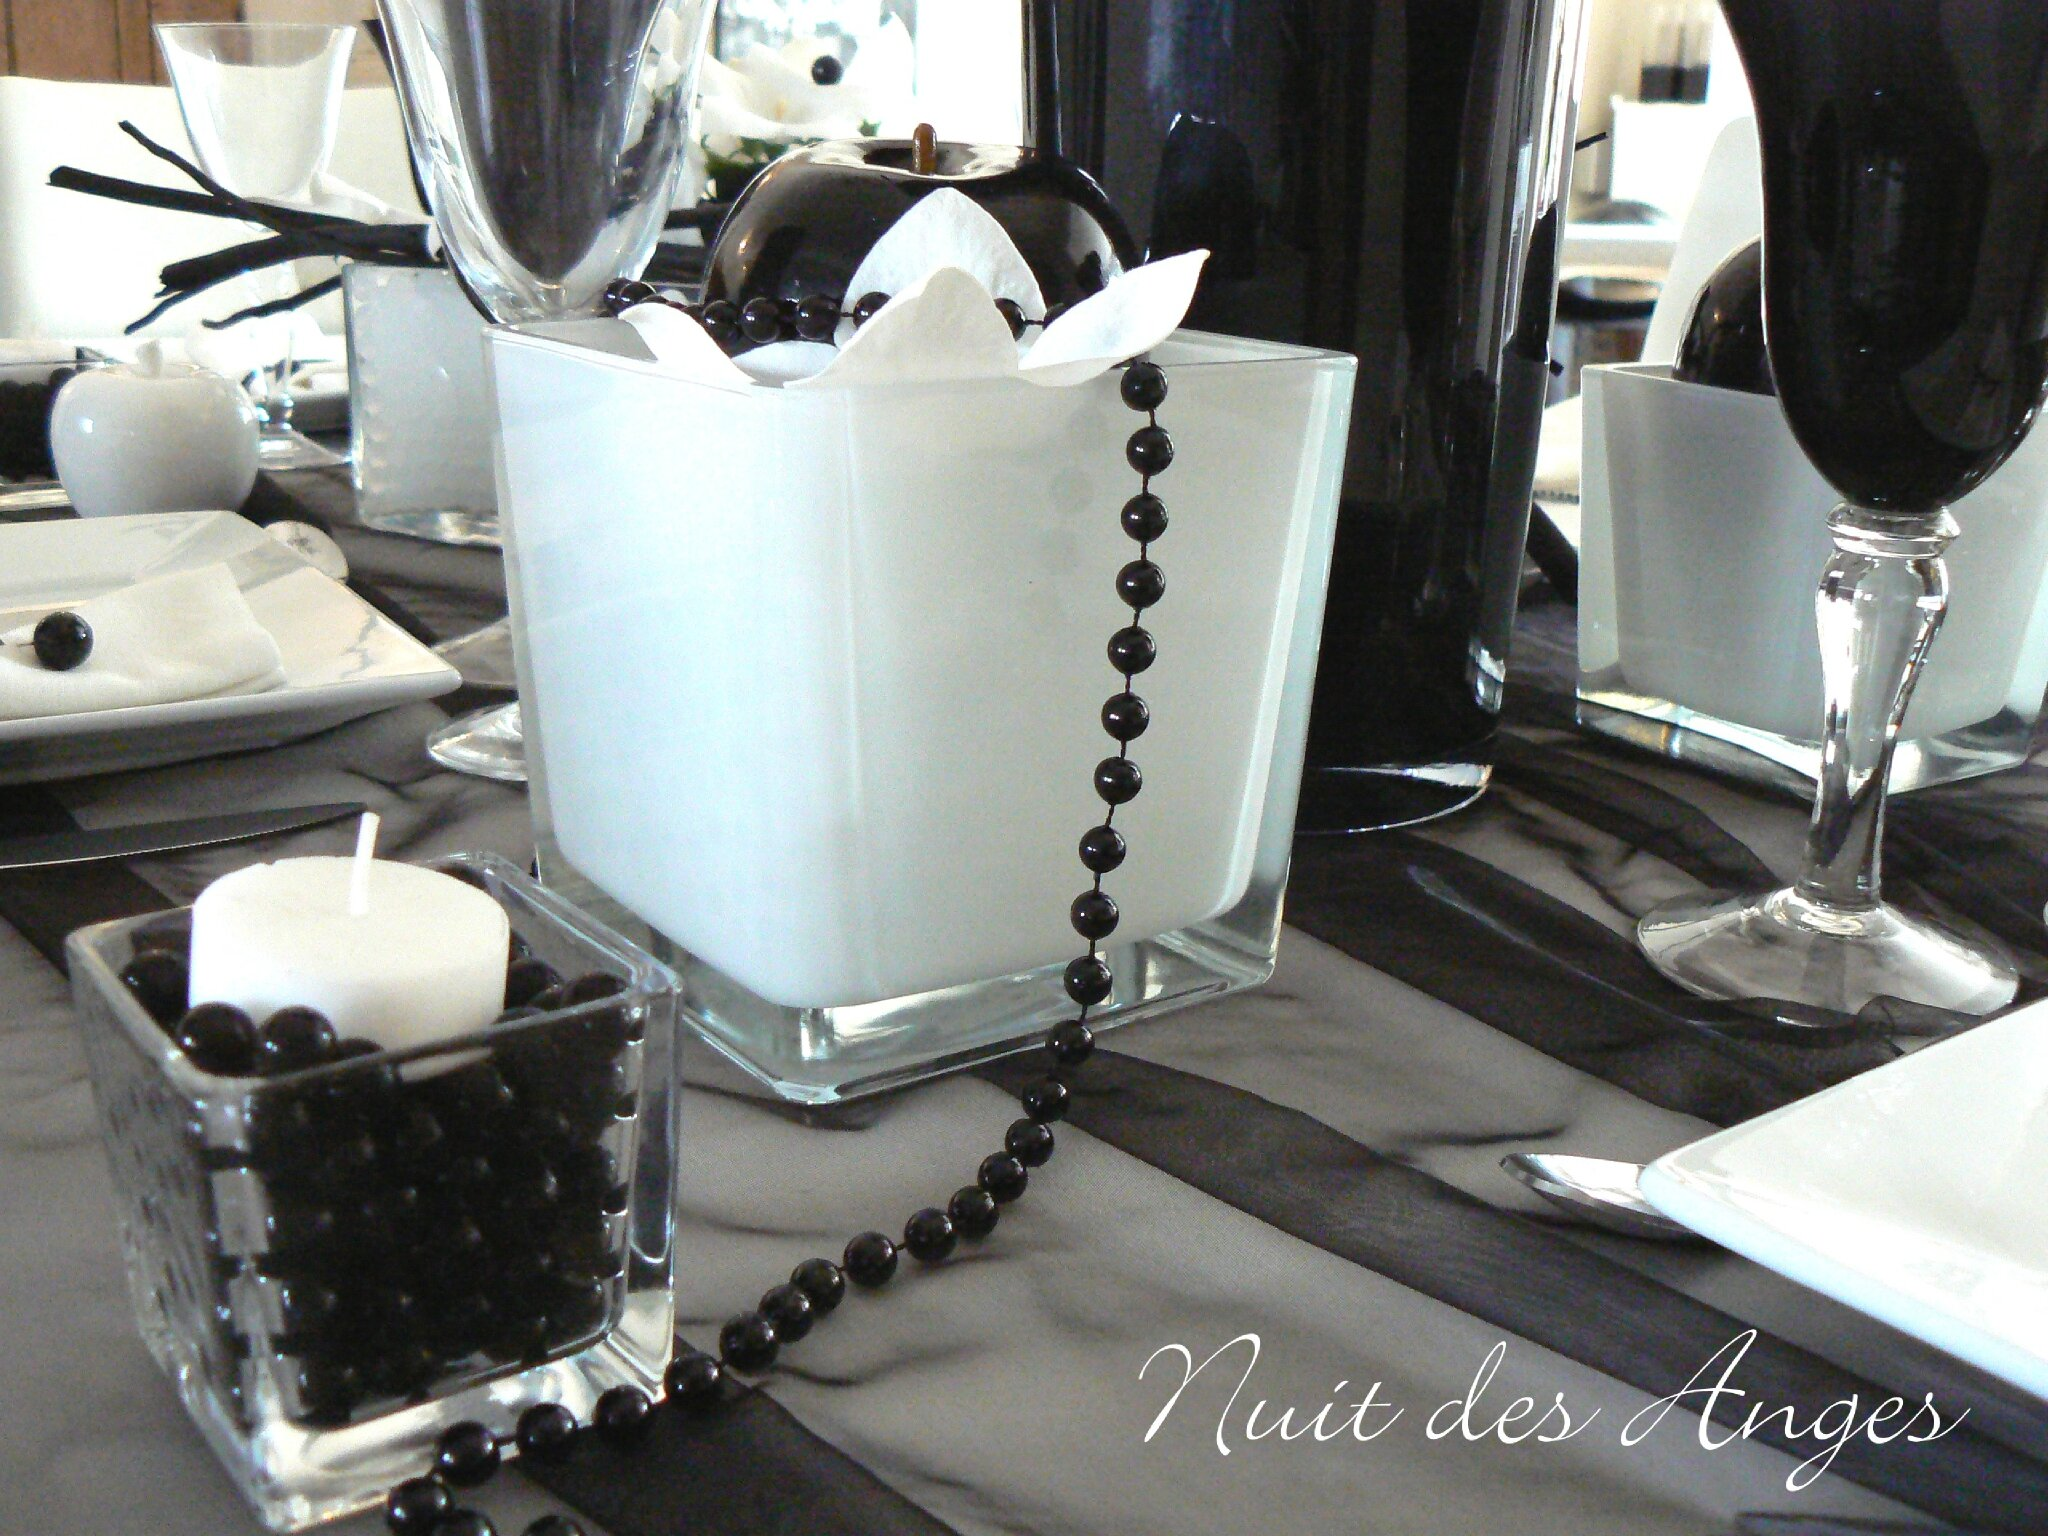 nuit des anges d coratrice de mariage d coration de table noir et blanc 011 photo de. Black Bedroom Furniture Sets. Home Design Ideas